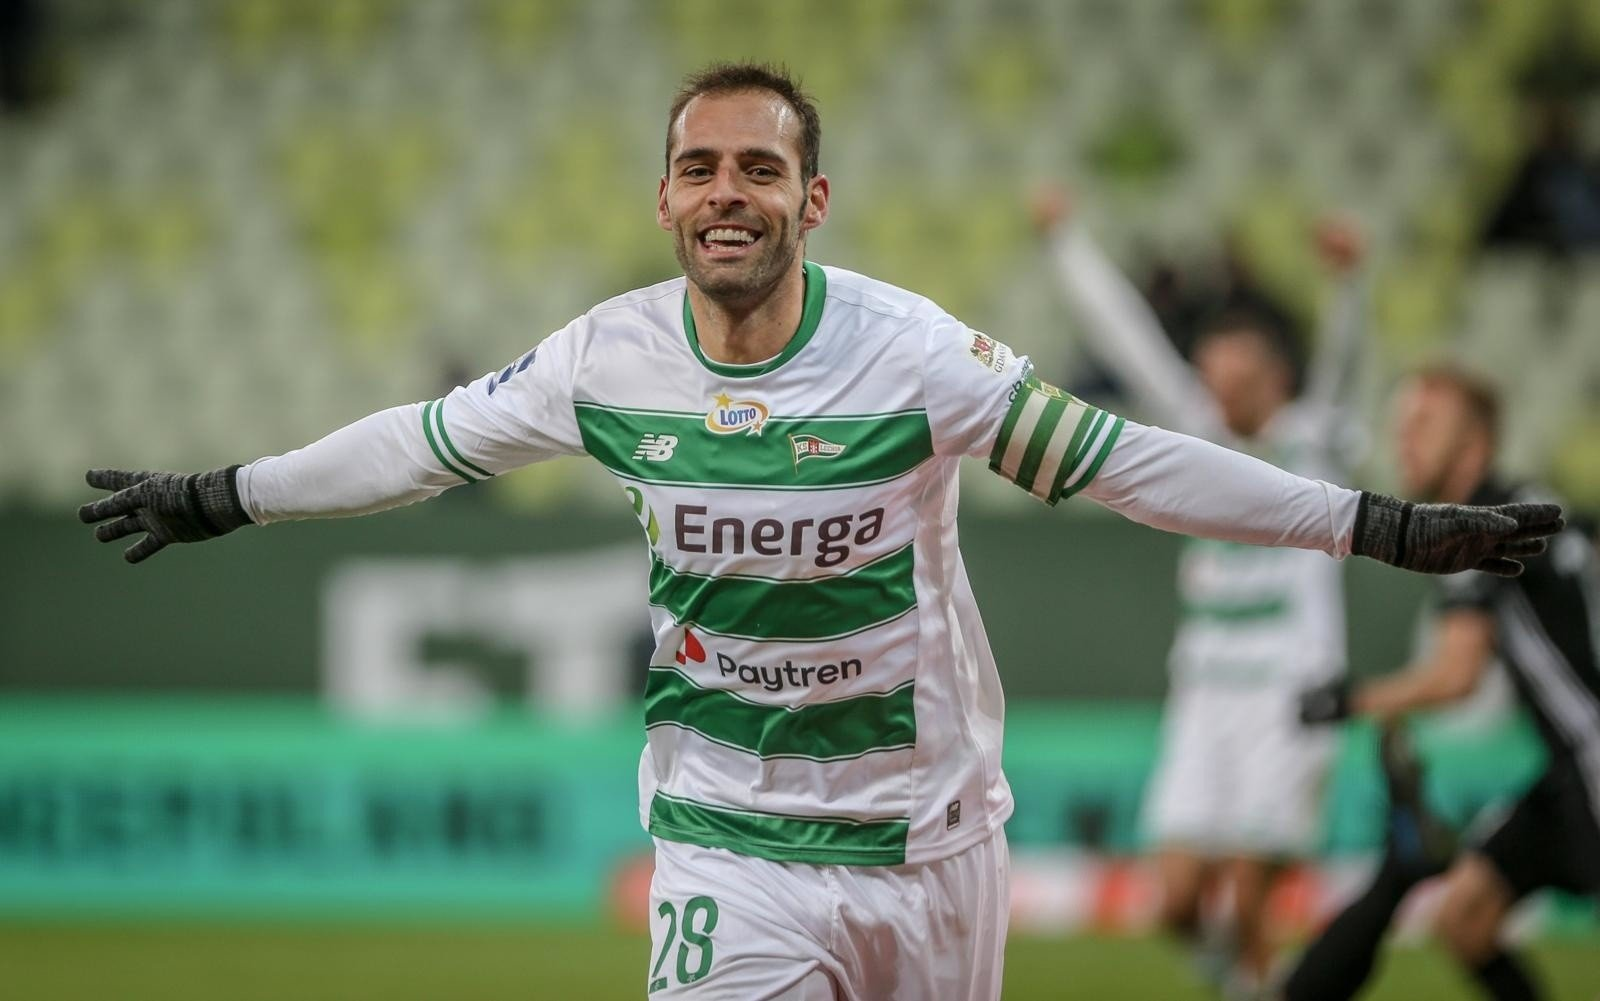 Lechia / BKS Lechia Gdańsk / The compact squad overview ...